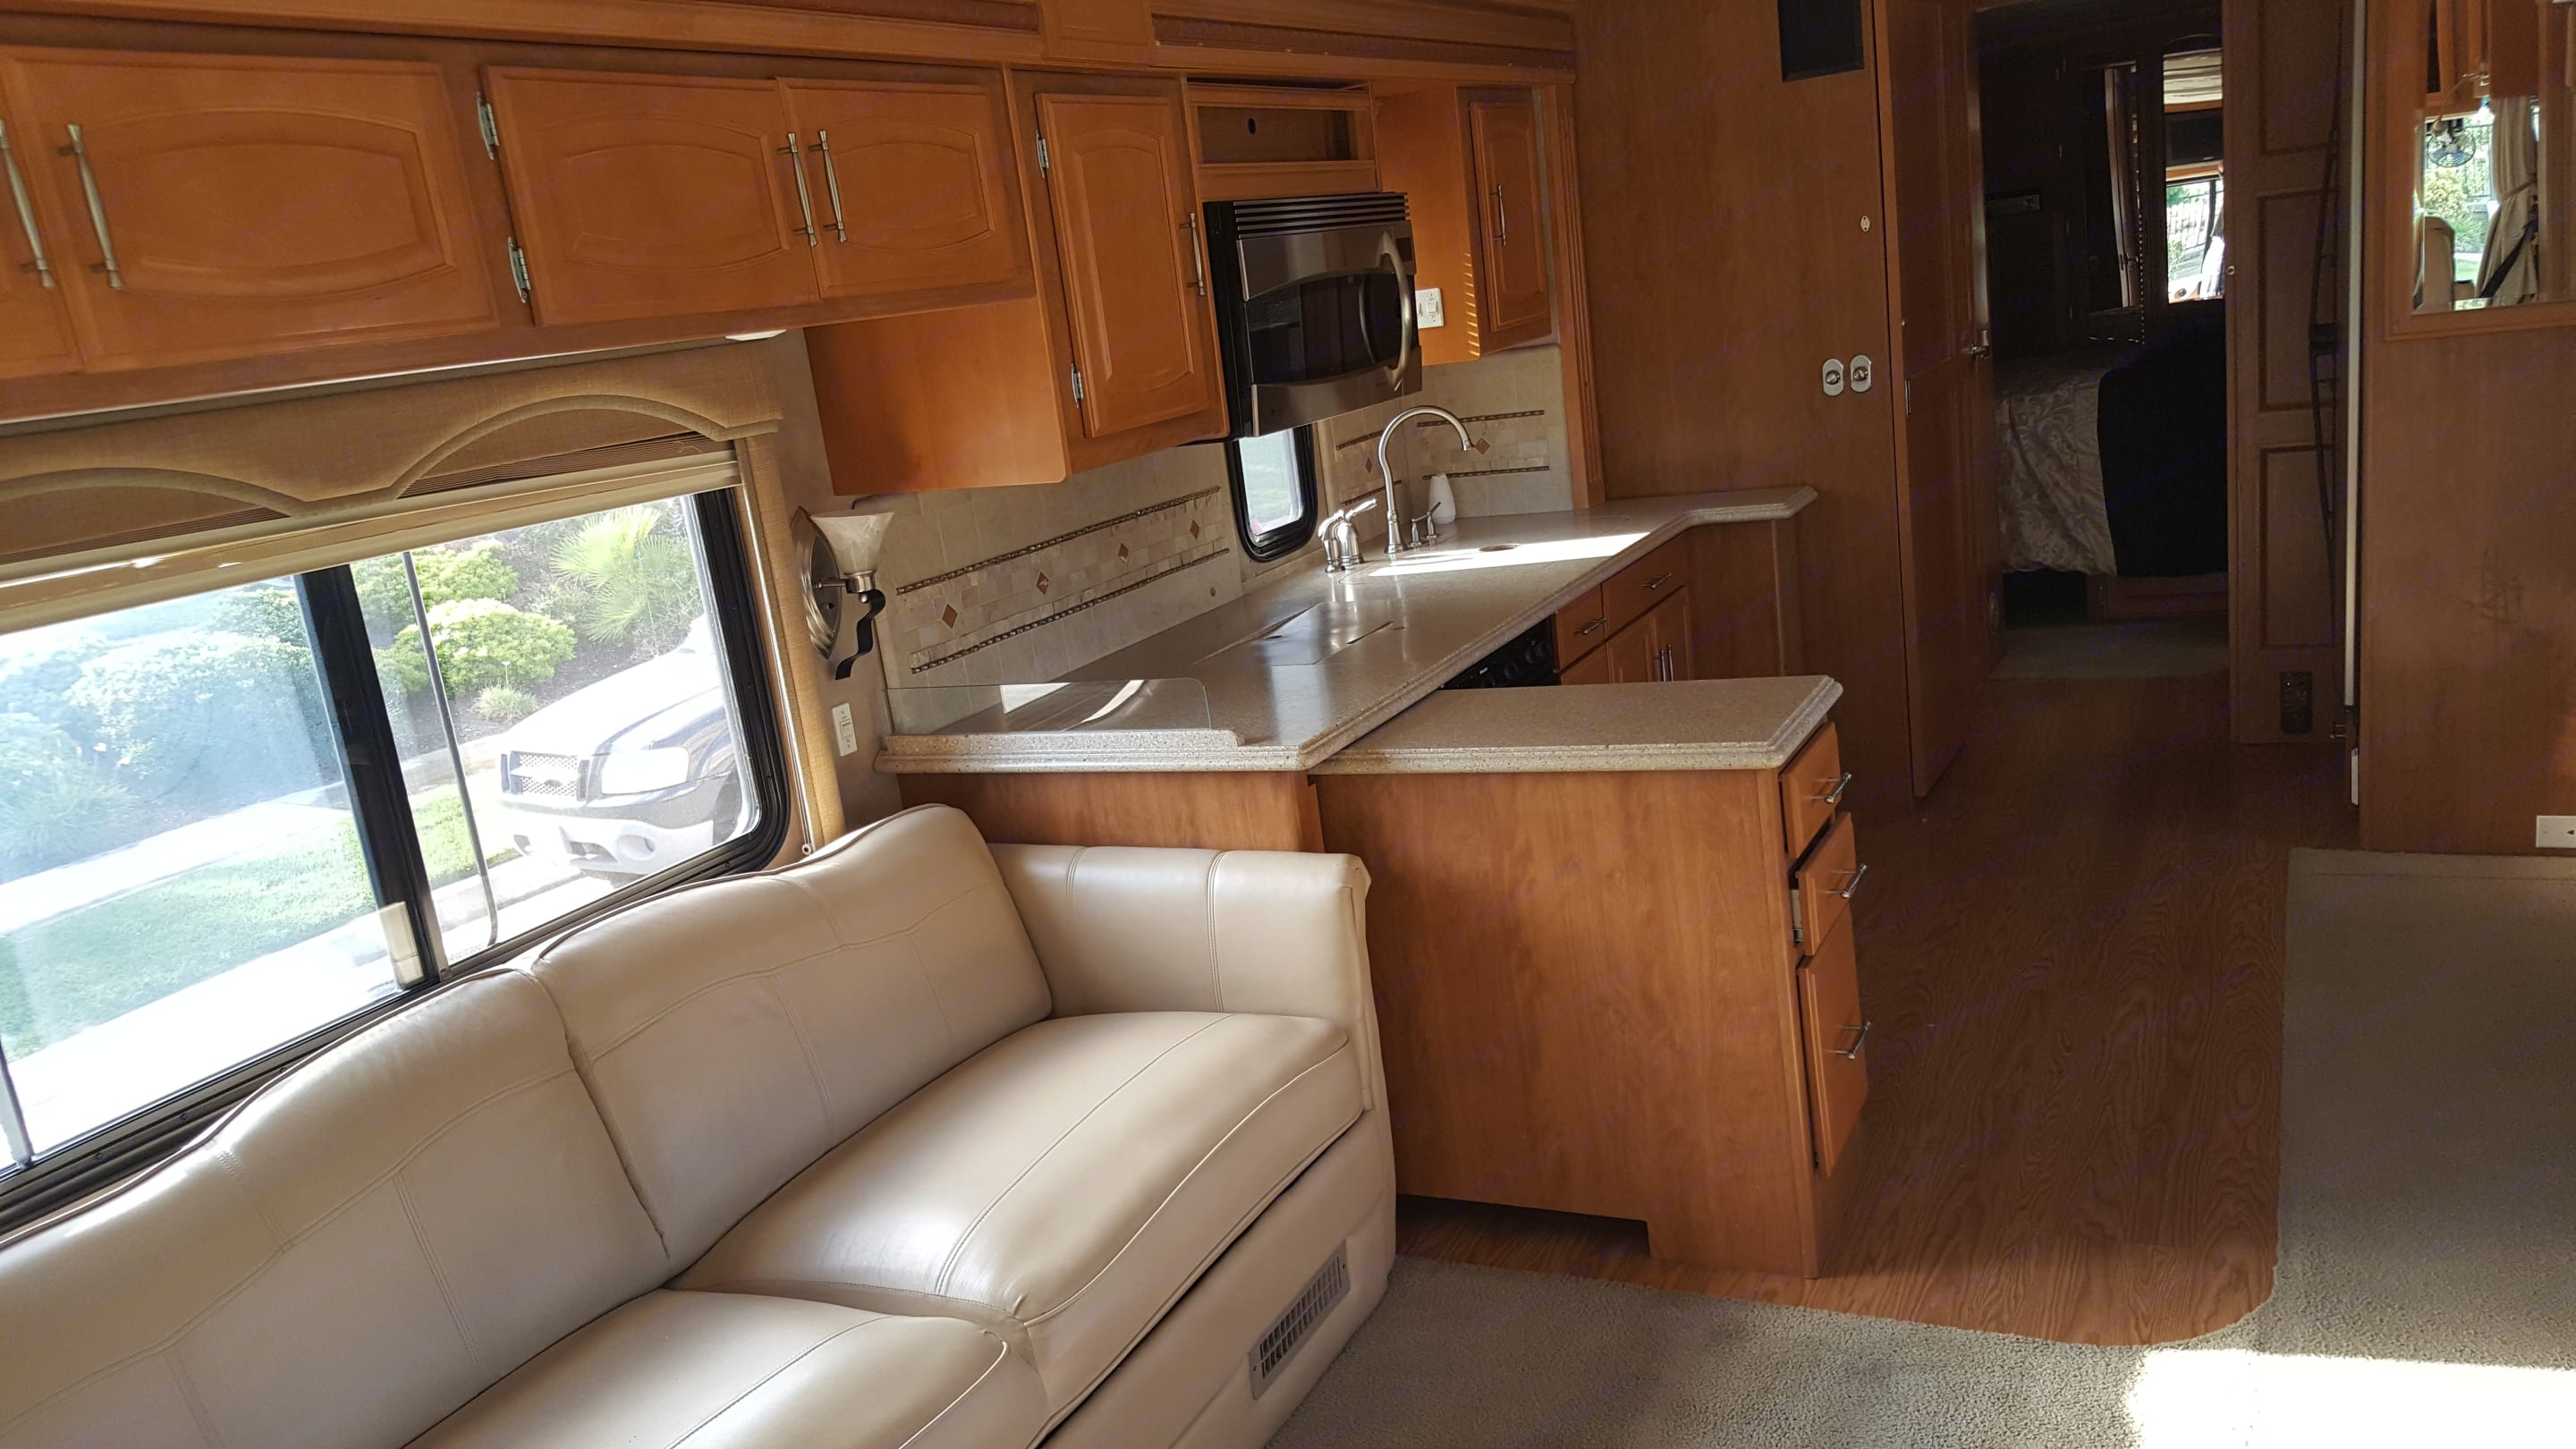 Plenty of counter space and a return that shows up when you do the slide out! Large leather couch turns into a flat bed that can be used even while driving if needed!. Fleetwood Providence 2007